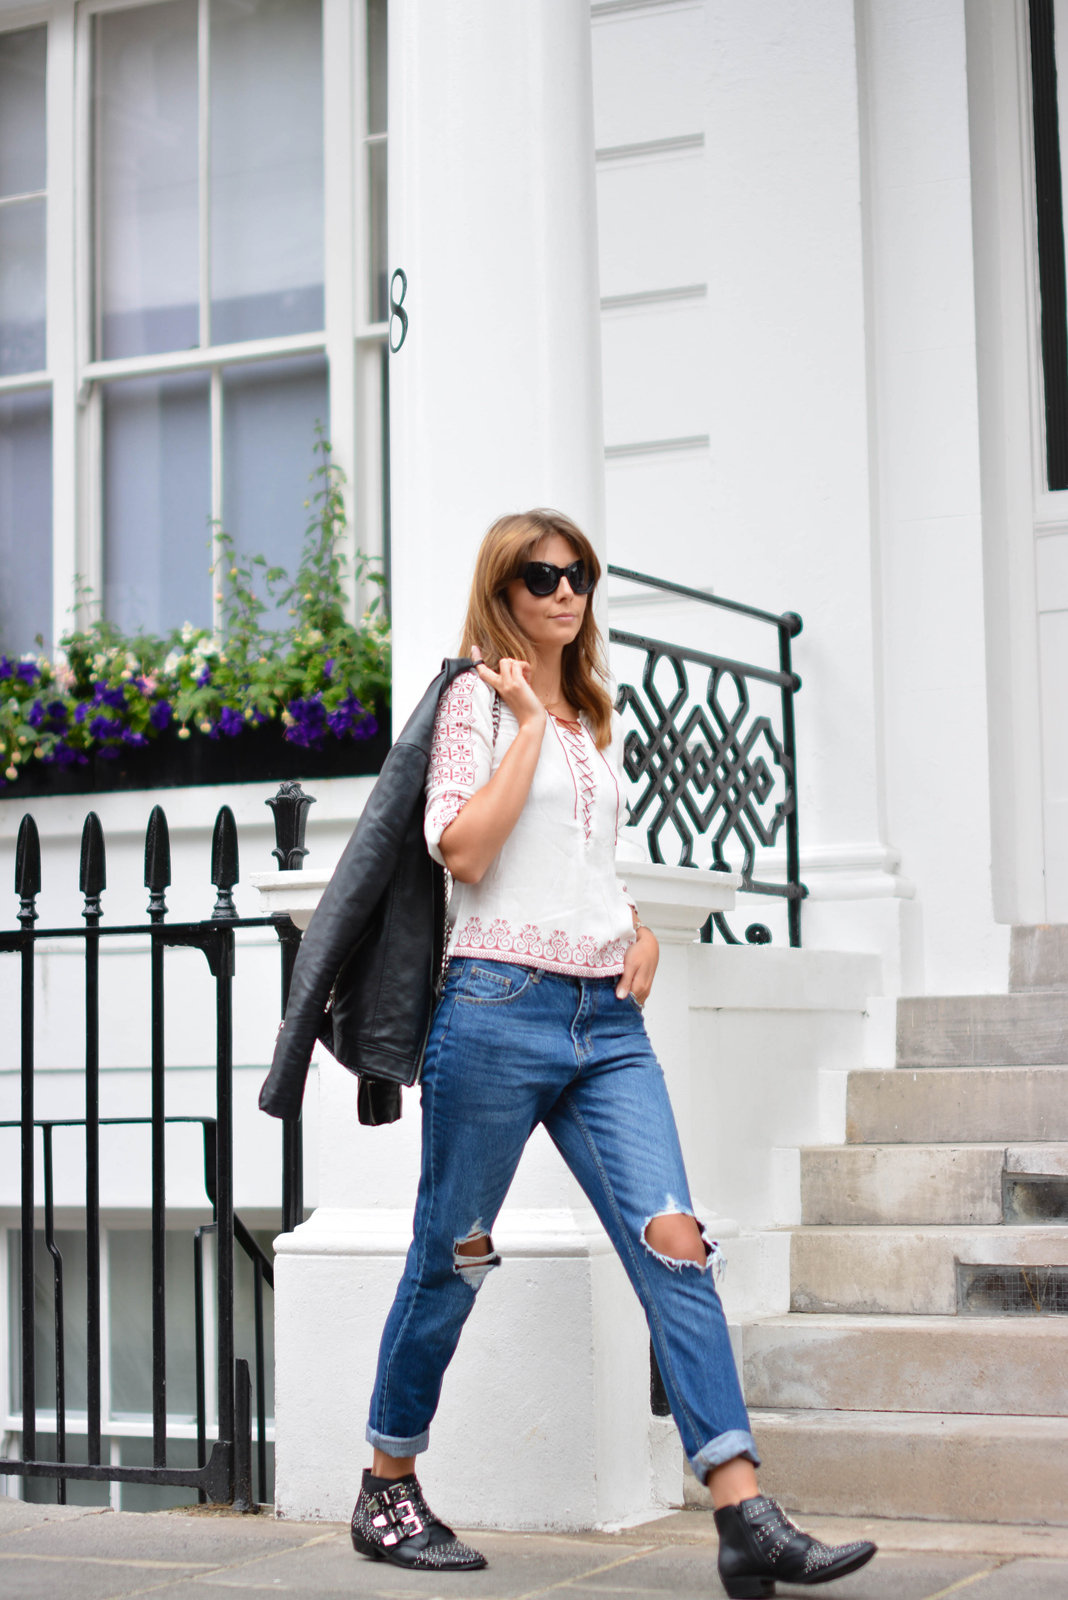 EJSTYLE - Emma Hill wears ripped boyfriend jeans, leather jacket, embroidered lace up top, chanel boy bag, studded black ankle boots, black cats eye sunglasses, OOTD, street style